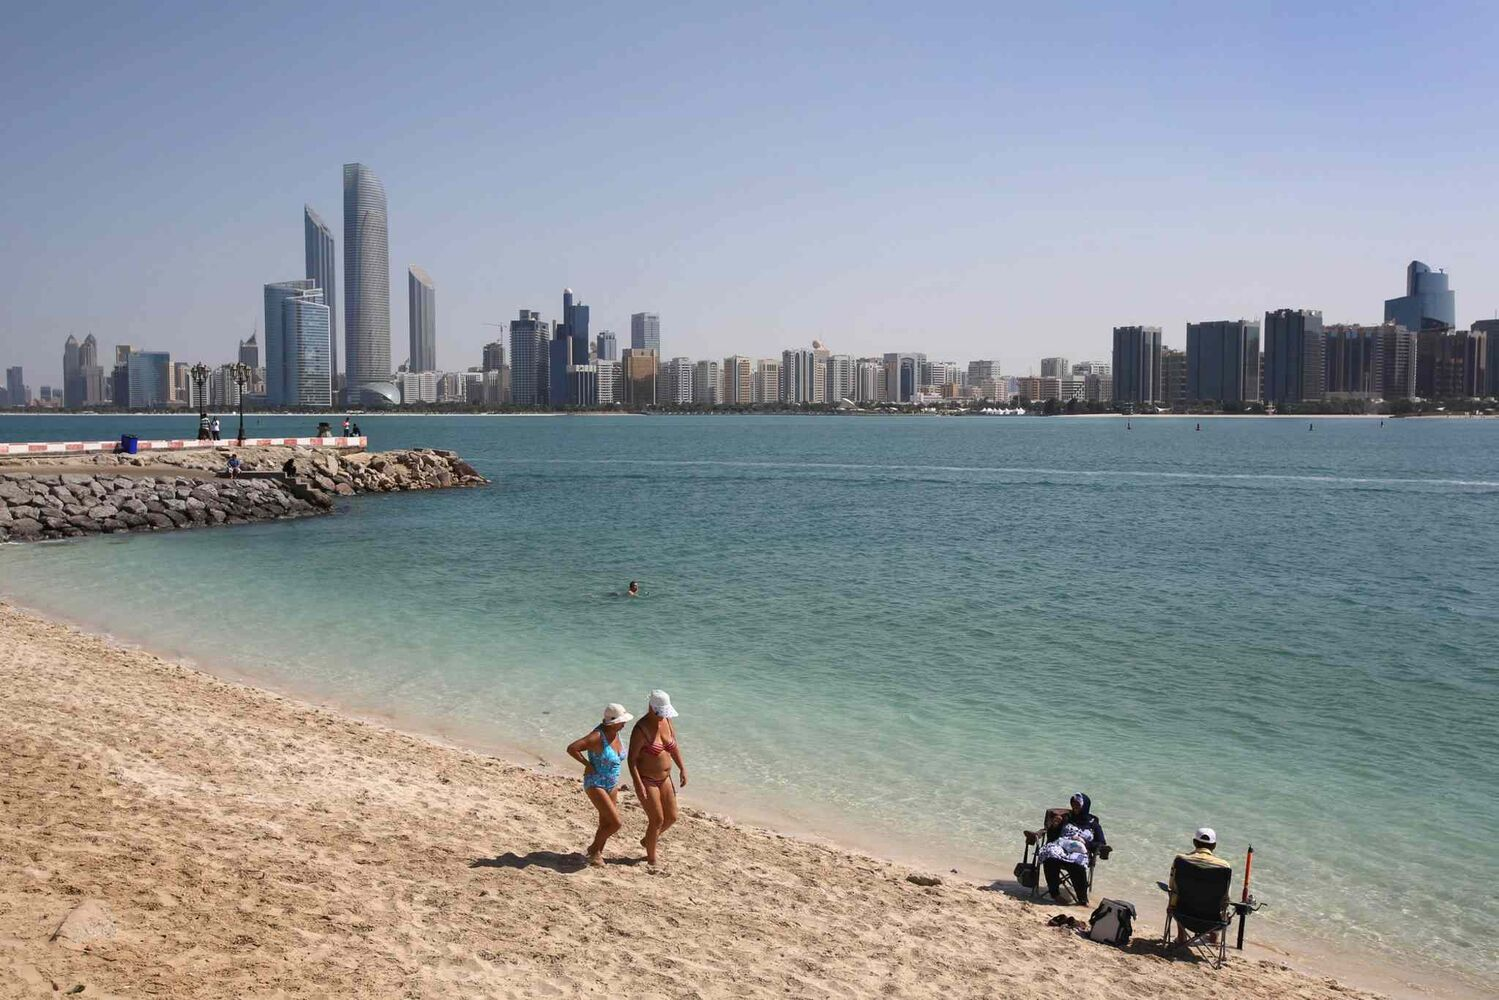 With the city skyline in background, two western tourists in their swimsuits pass local residents as they stroll on the beach in Abu Dhabi, United Arab Emirates.